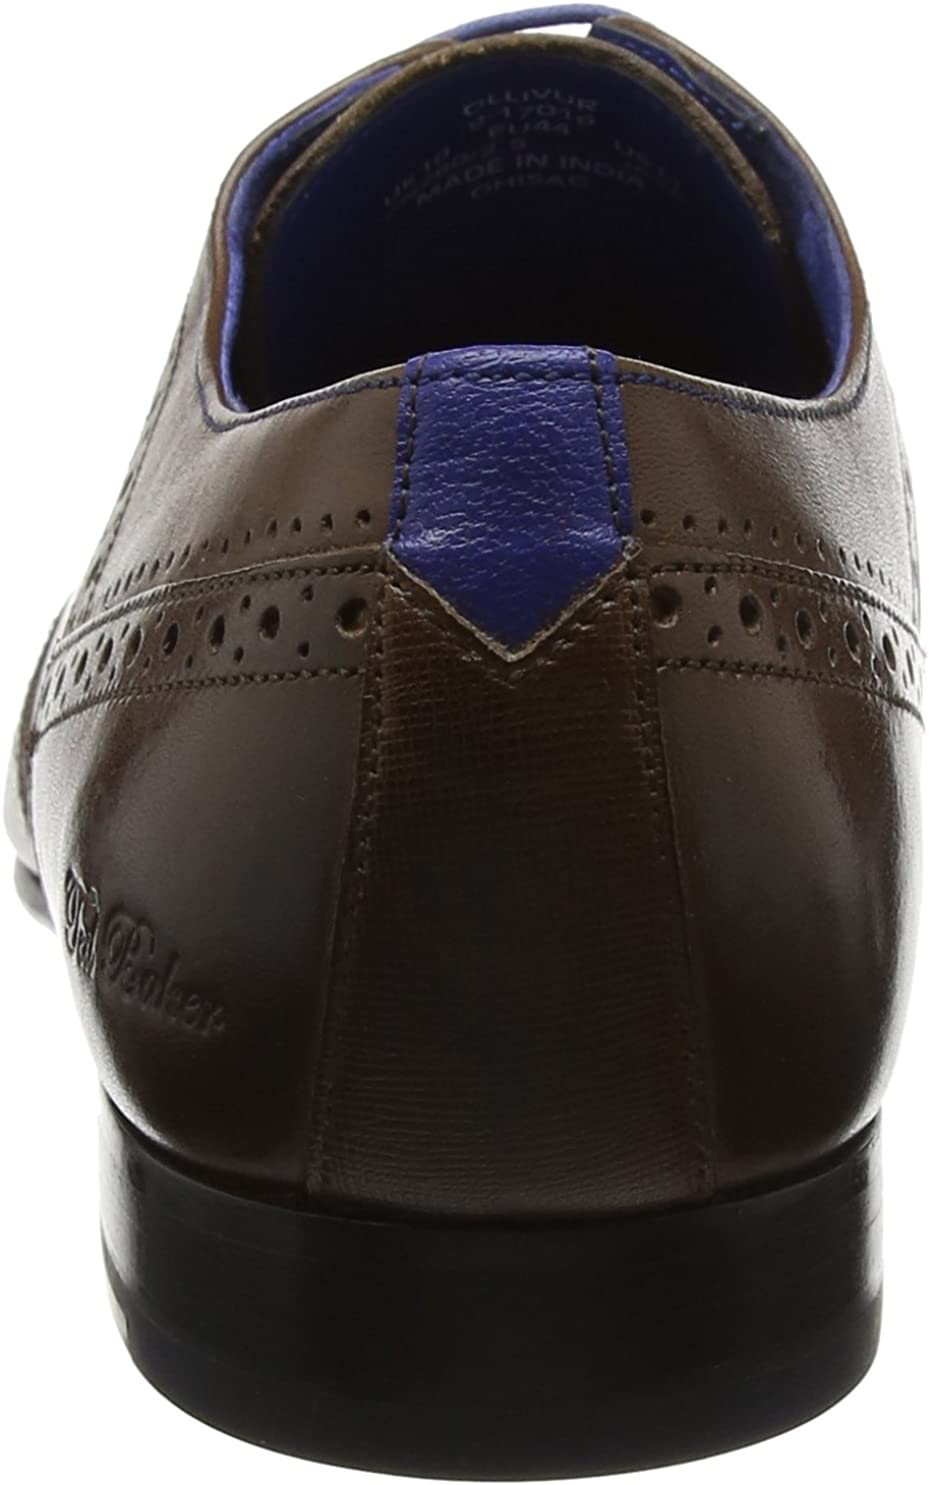 Ted Baker Mens Ollivur Leather Lace Up Formal Brogue Shoe Brown